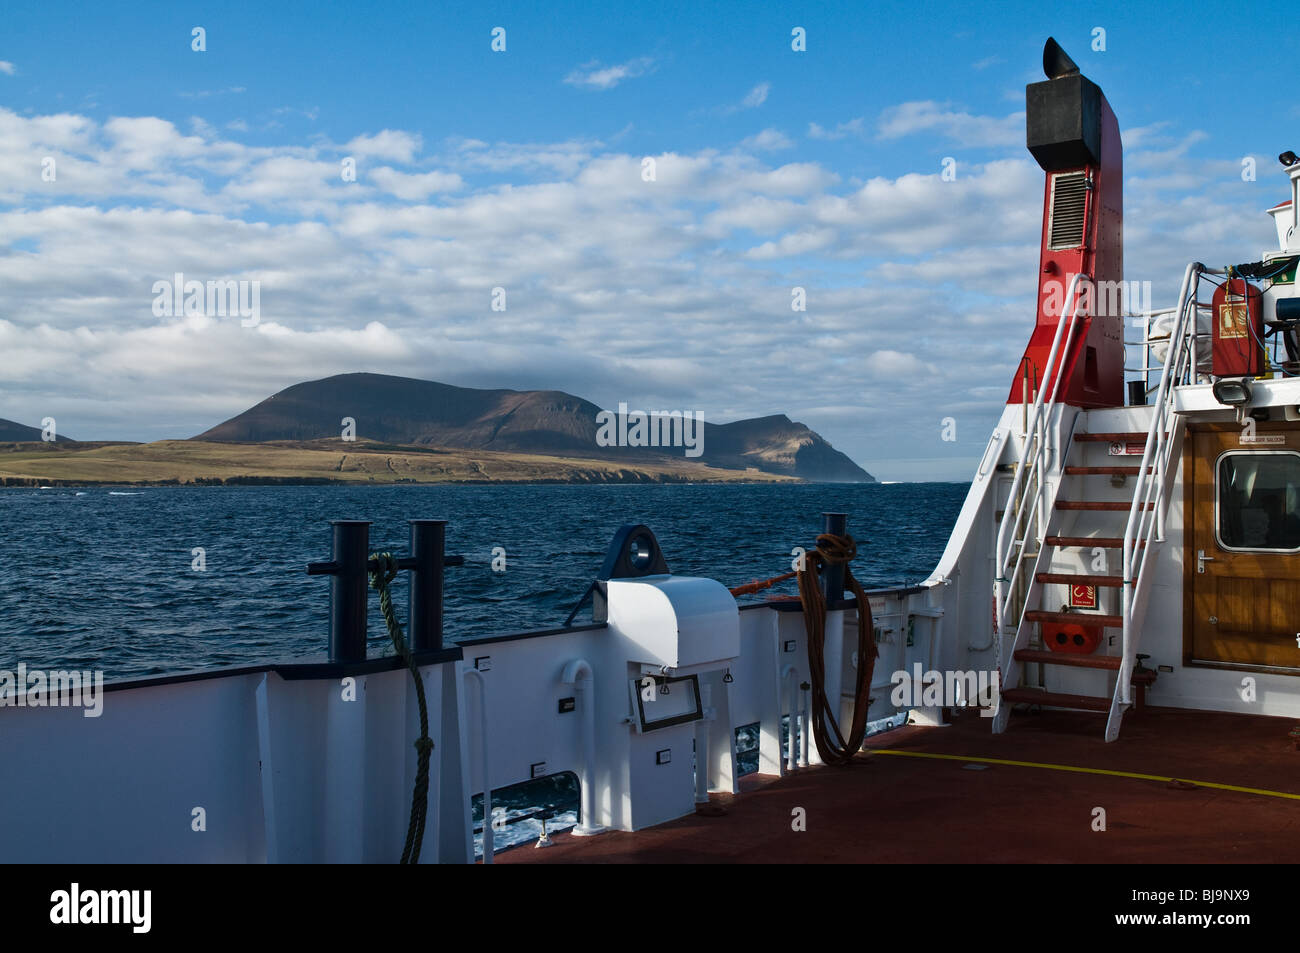 dh Orkney ferries HOY SOUND ORKNEY Hoy Hills view from aboard Orkney Ferries MV Graemsay Stock Photo